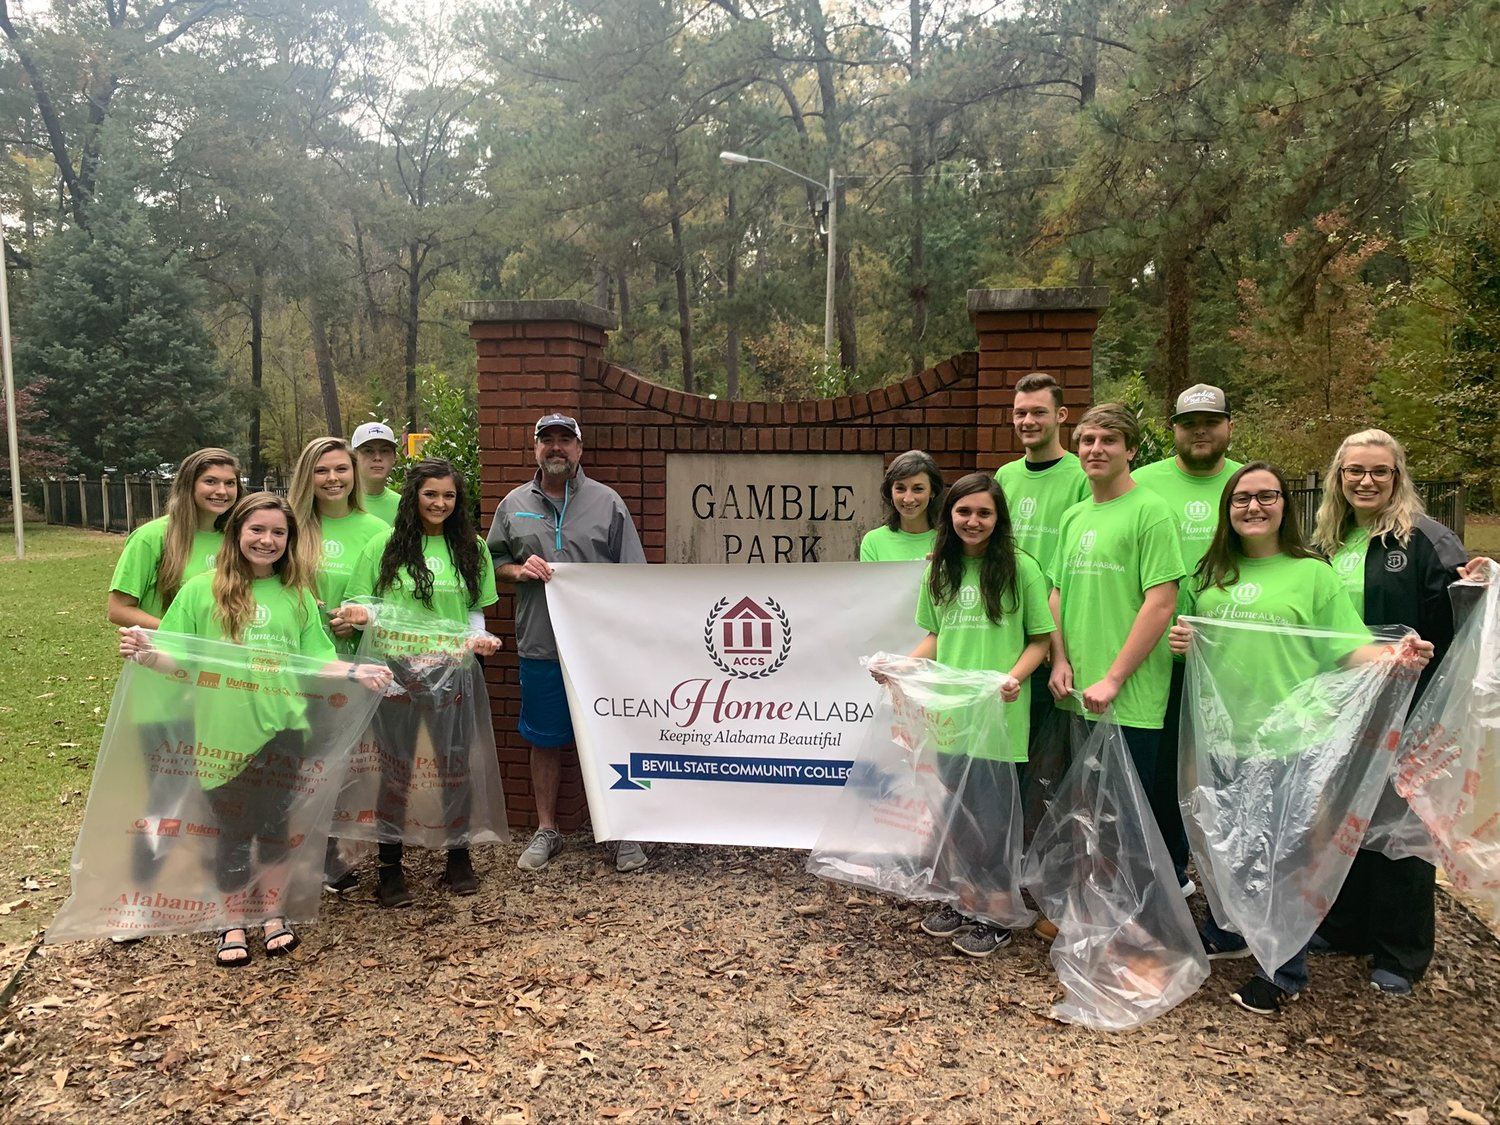 Bevill State Community College students, in cooperation with the City of Jasper, held a Clean Home Alabama cleanup on Thursday at Gamble Park. The college planned a similar cleanup in Sumiton.